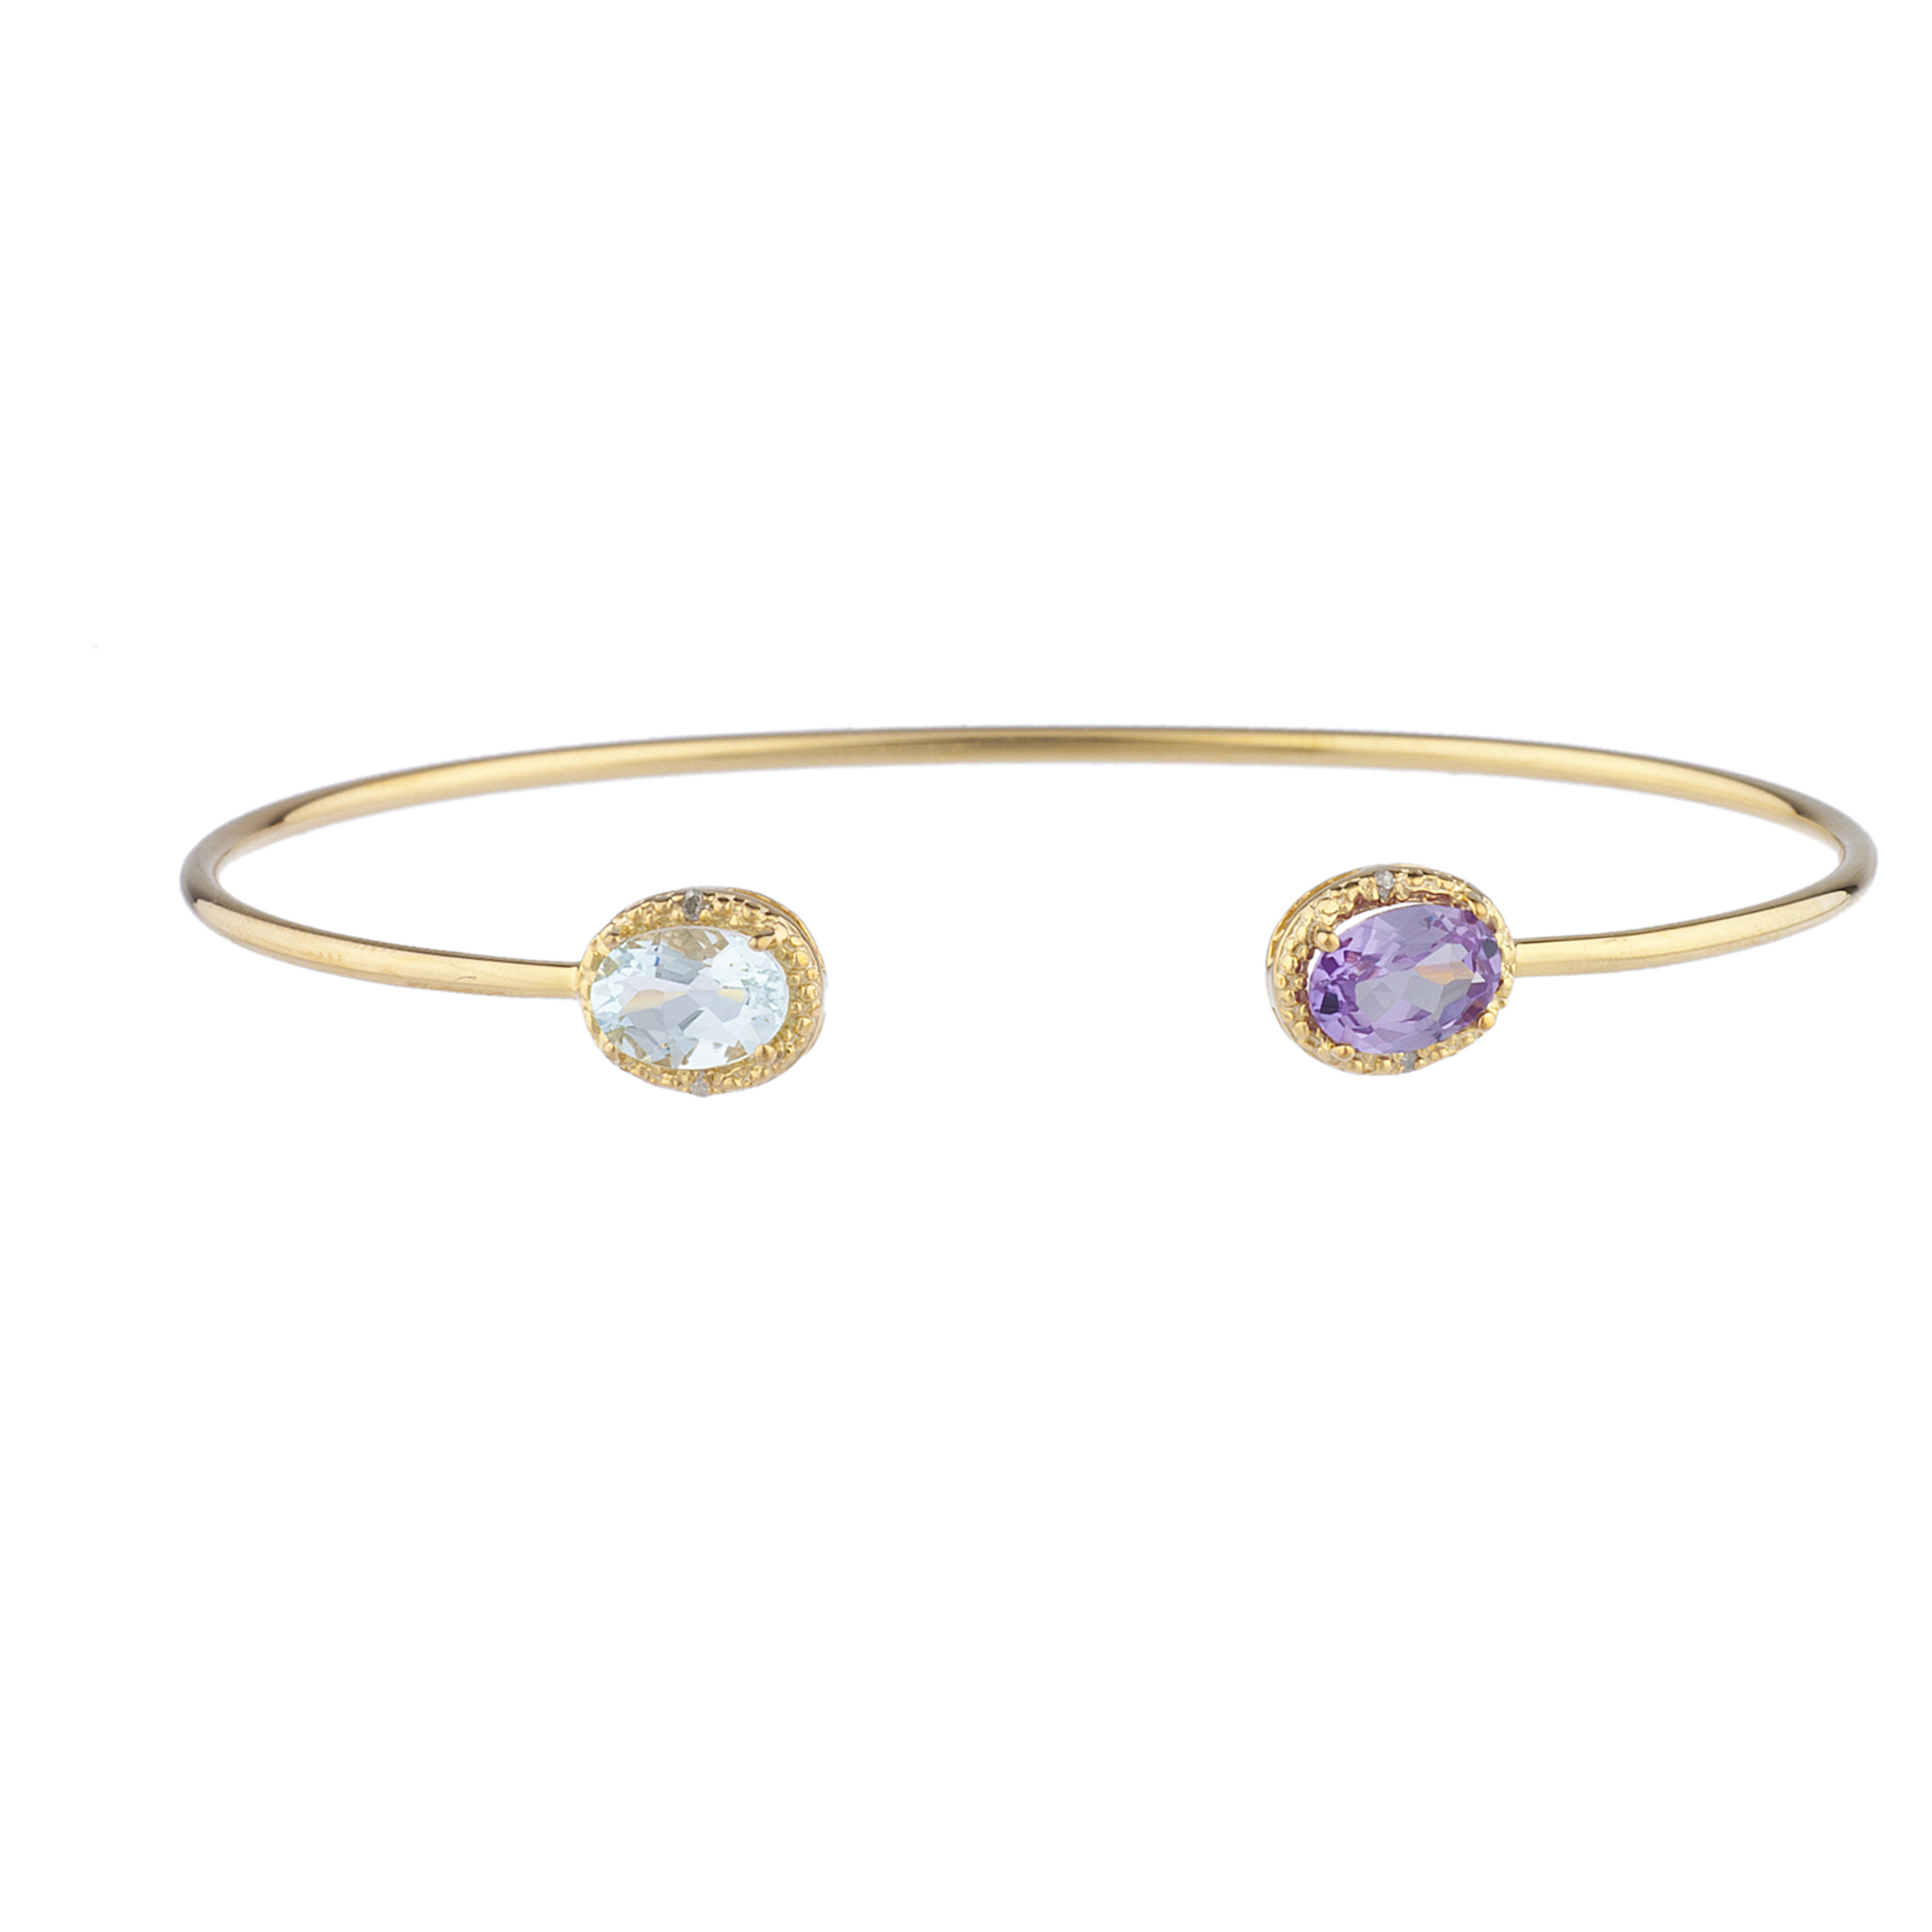 Genuine Aquamarine & Amethyst Diamond Bangle Oval Bracelet 14Kt Yellow Gold Plated Over .925 Sterling Silver by Elizabeth Jewelry Inc